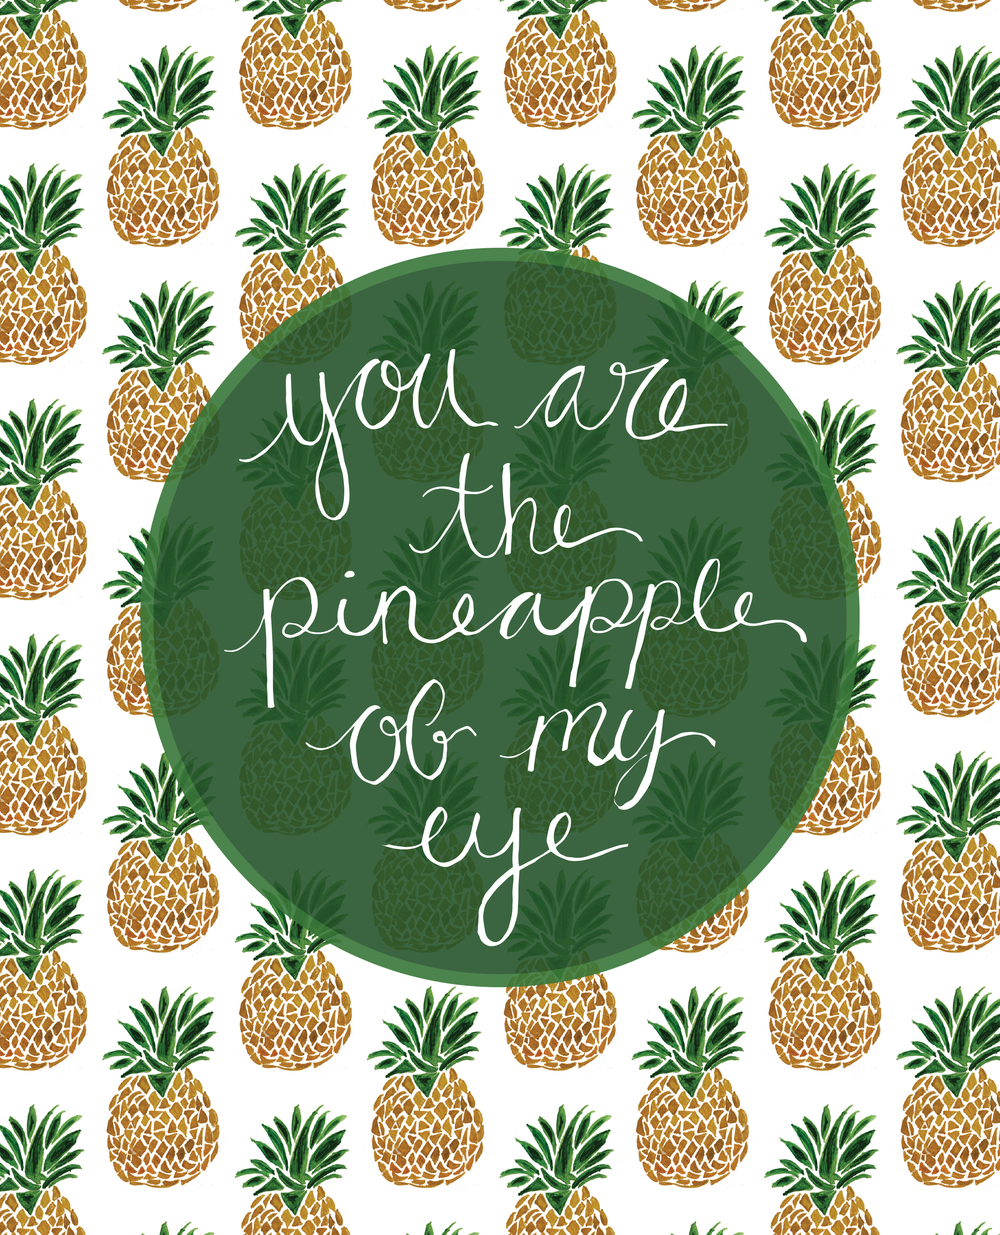 PineappleOfMyEye.jpg